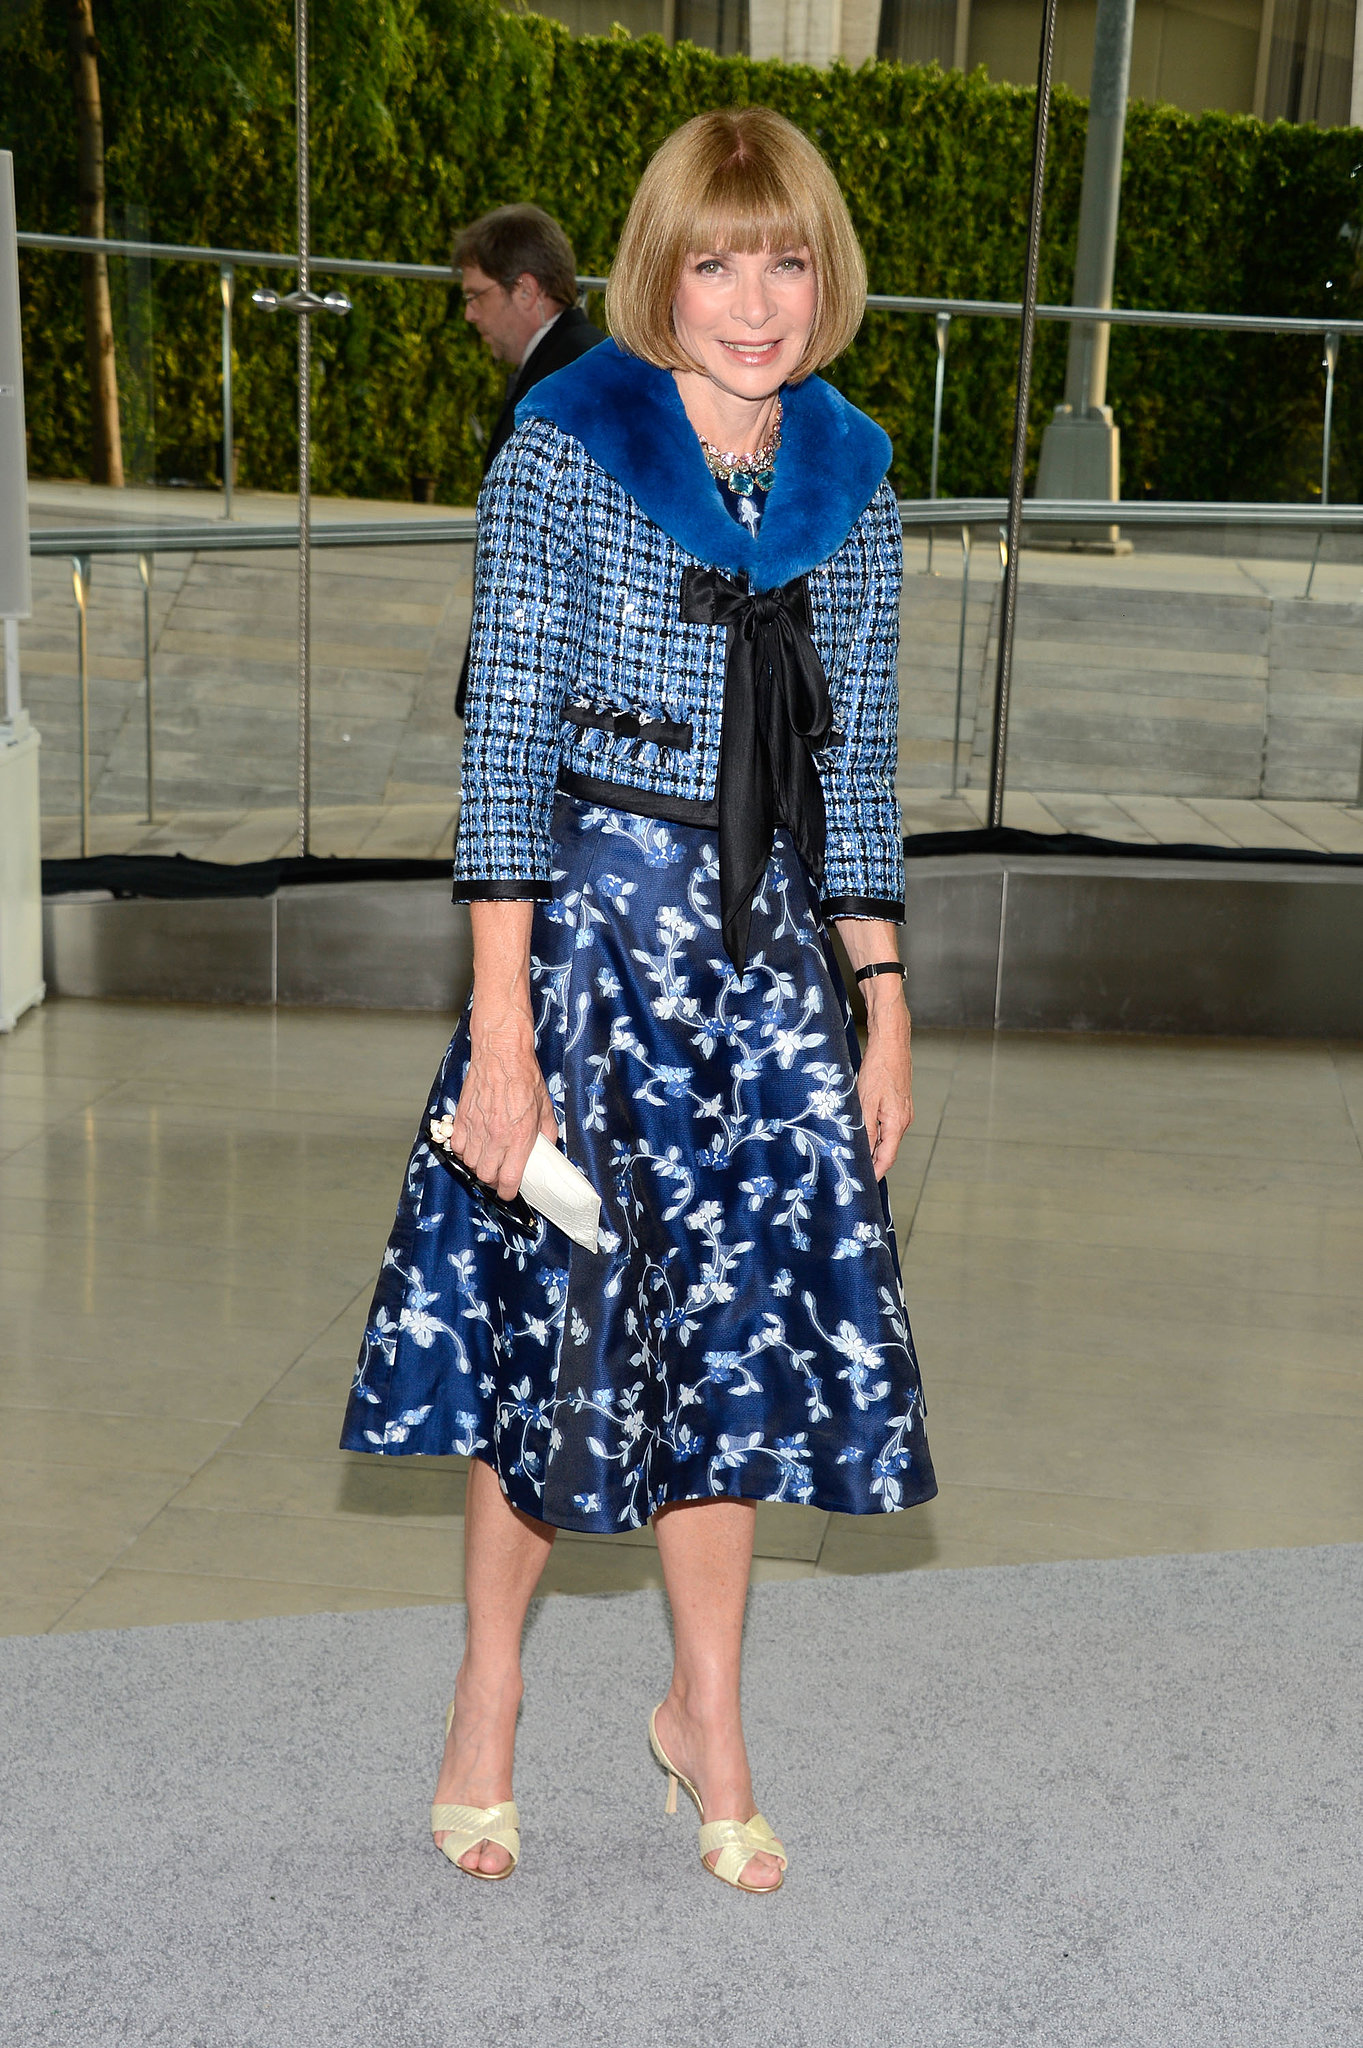 Anna Wintour at the 2013 CFDA Awards.